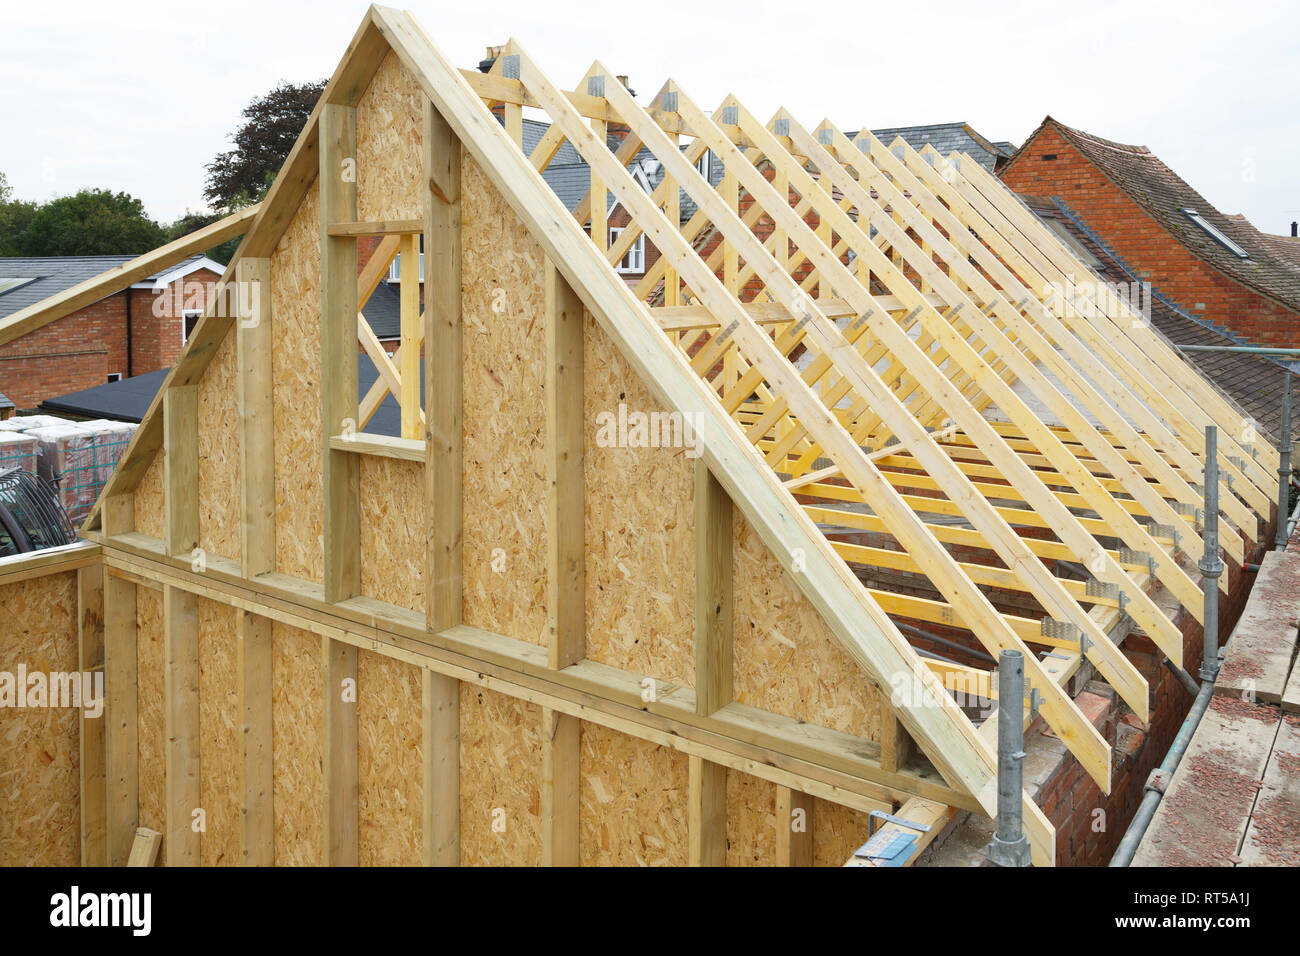 Gable and wooden roof trusses to a timber frame house under construction - Stock Image